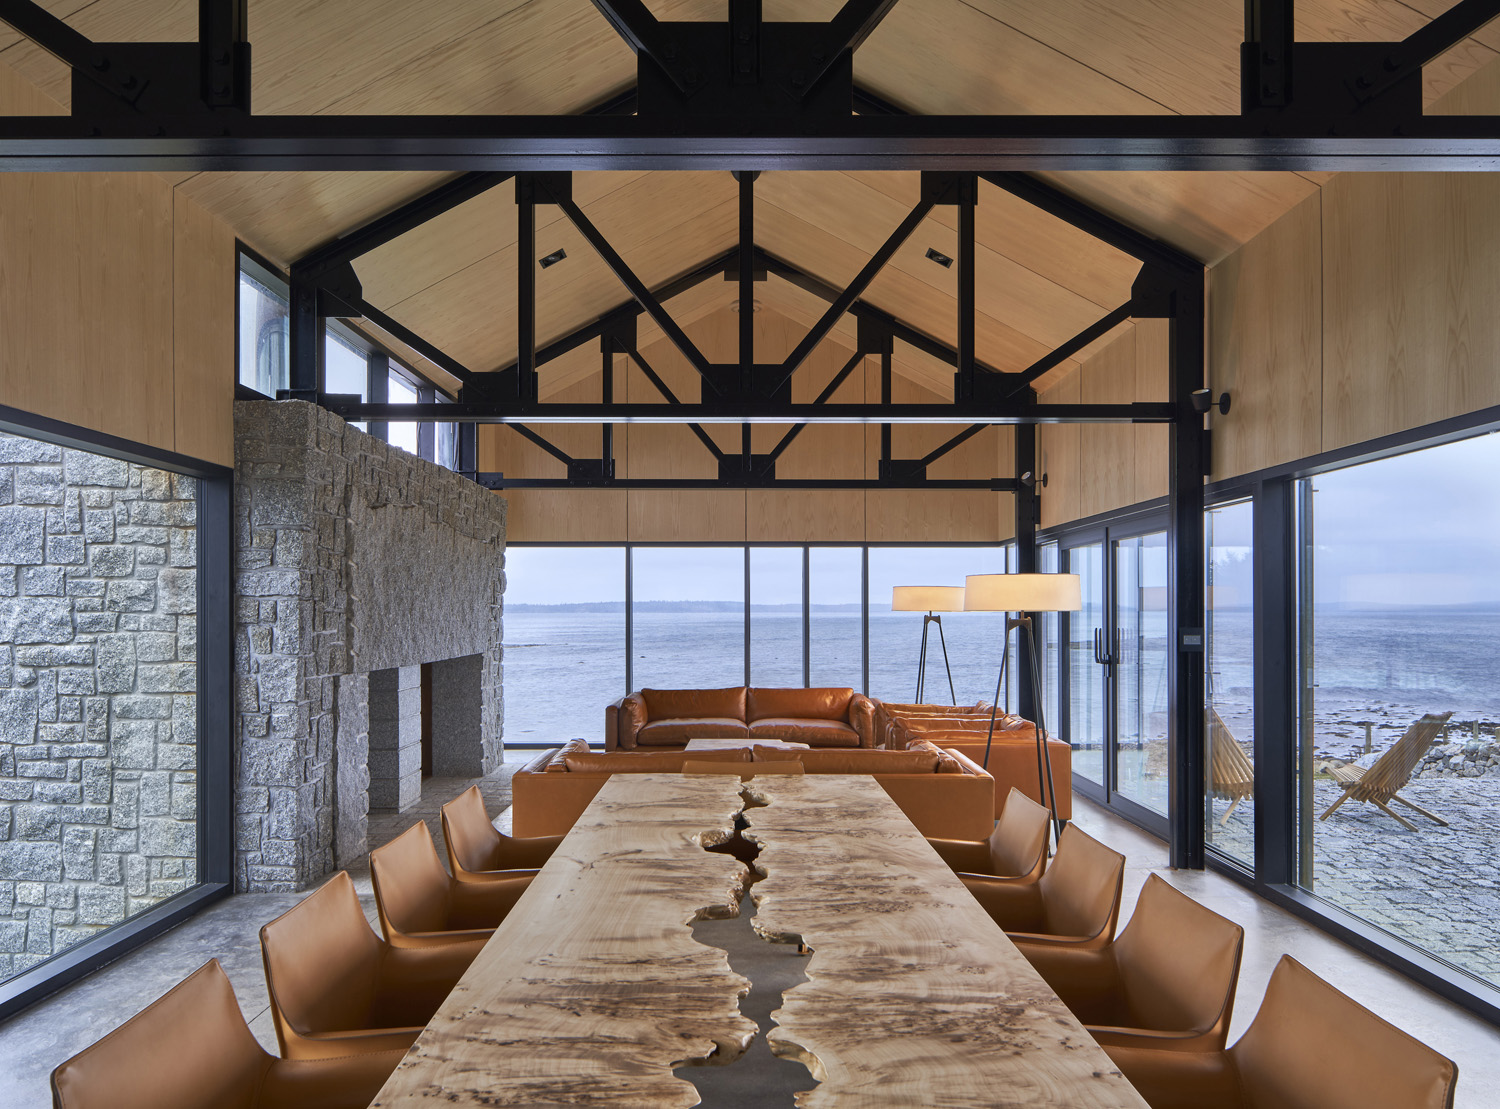 The temple-like place emphasises the absolute datum of the ocean horizon Doublespace Photography Inc